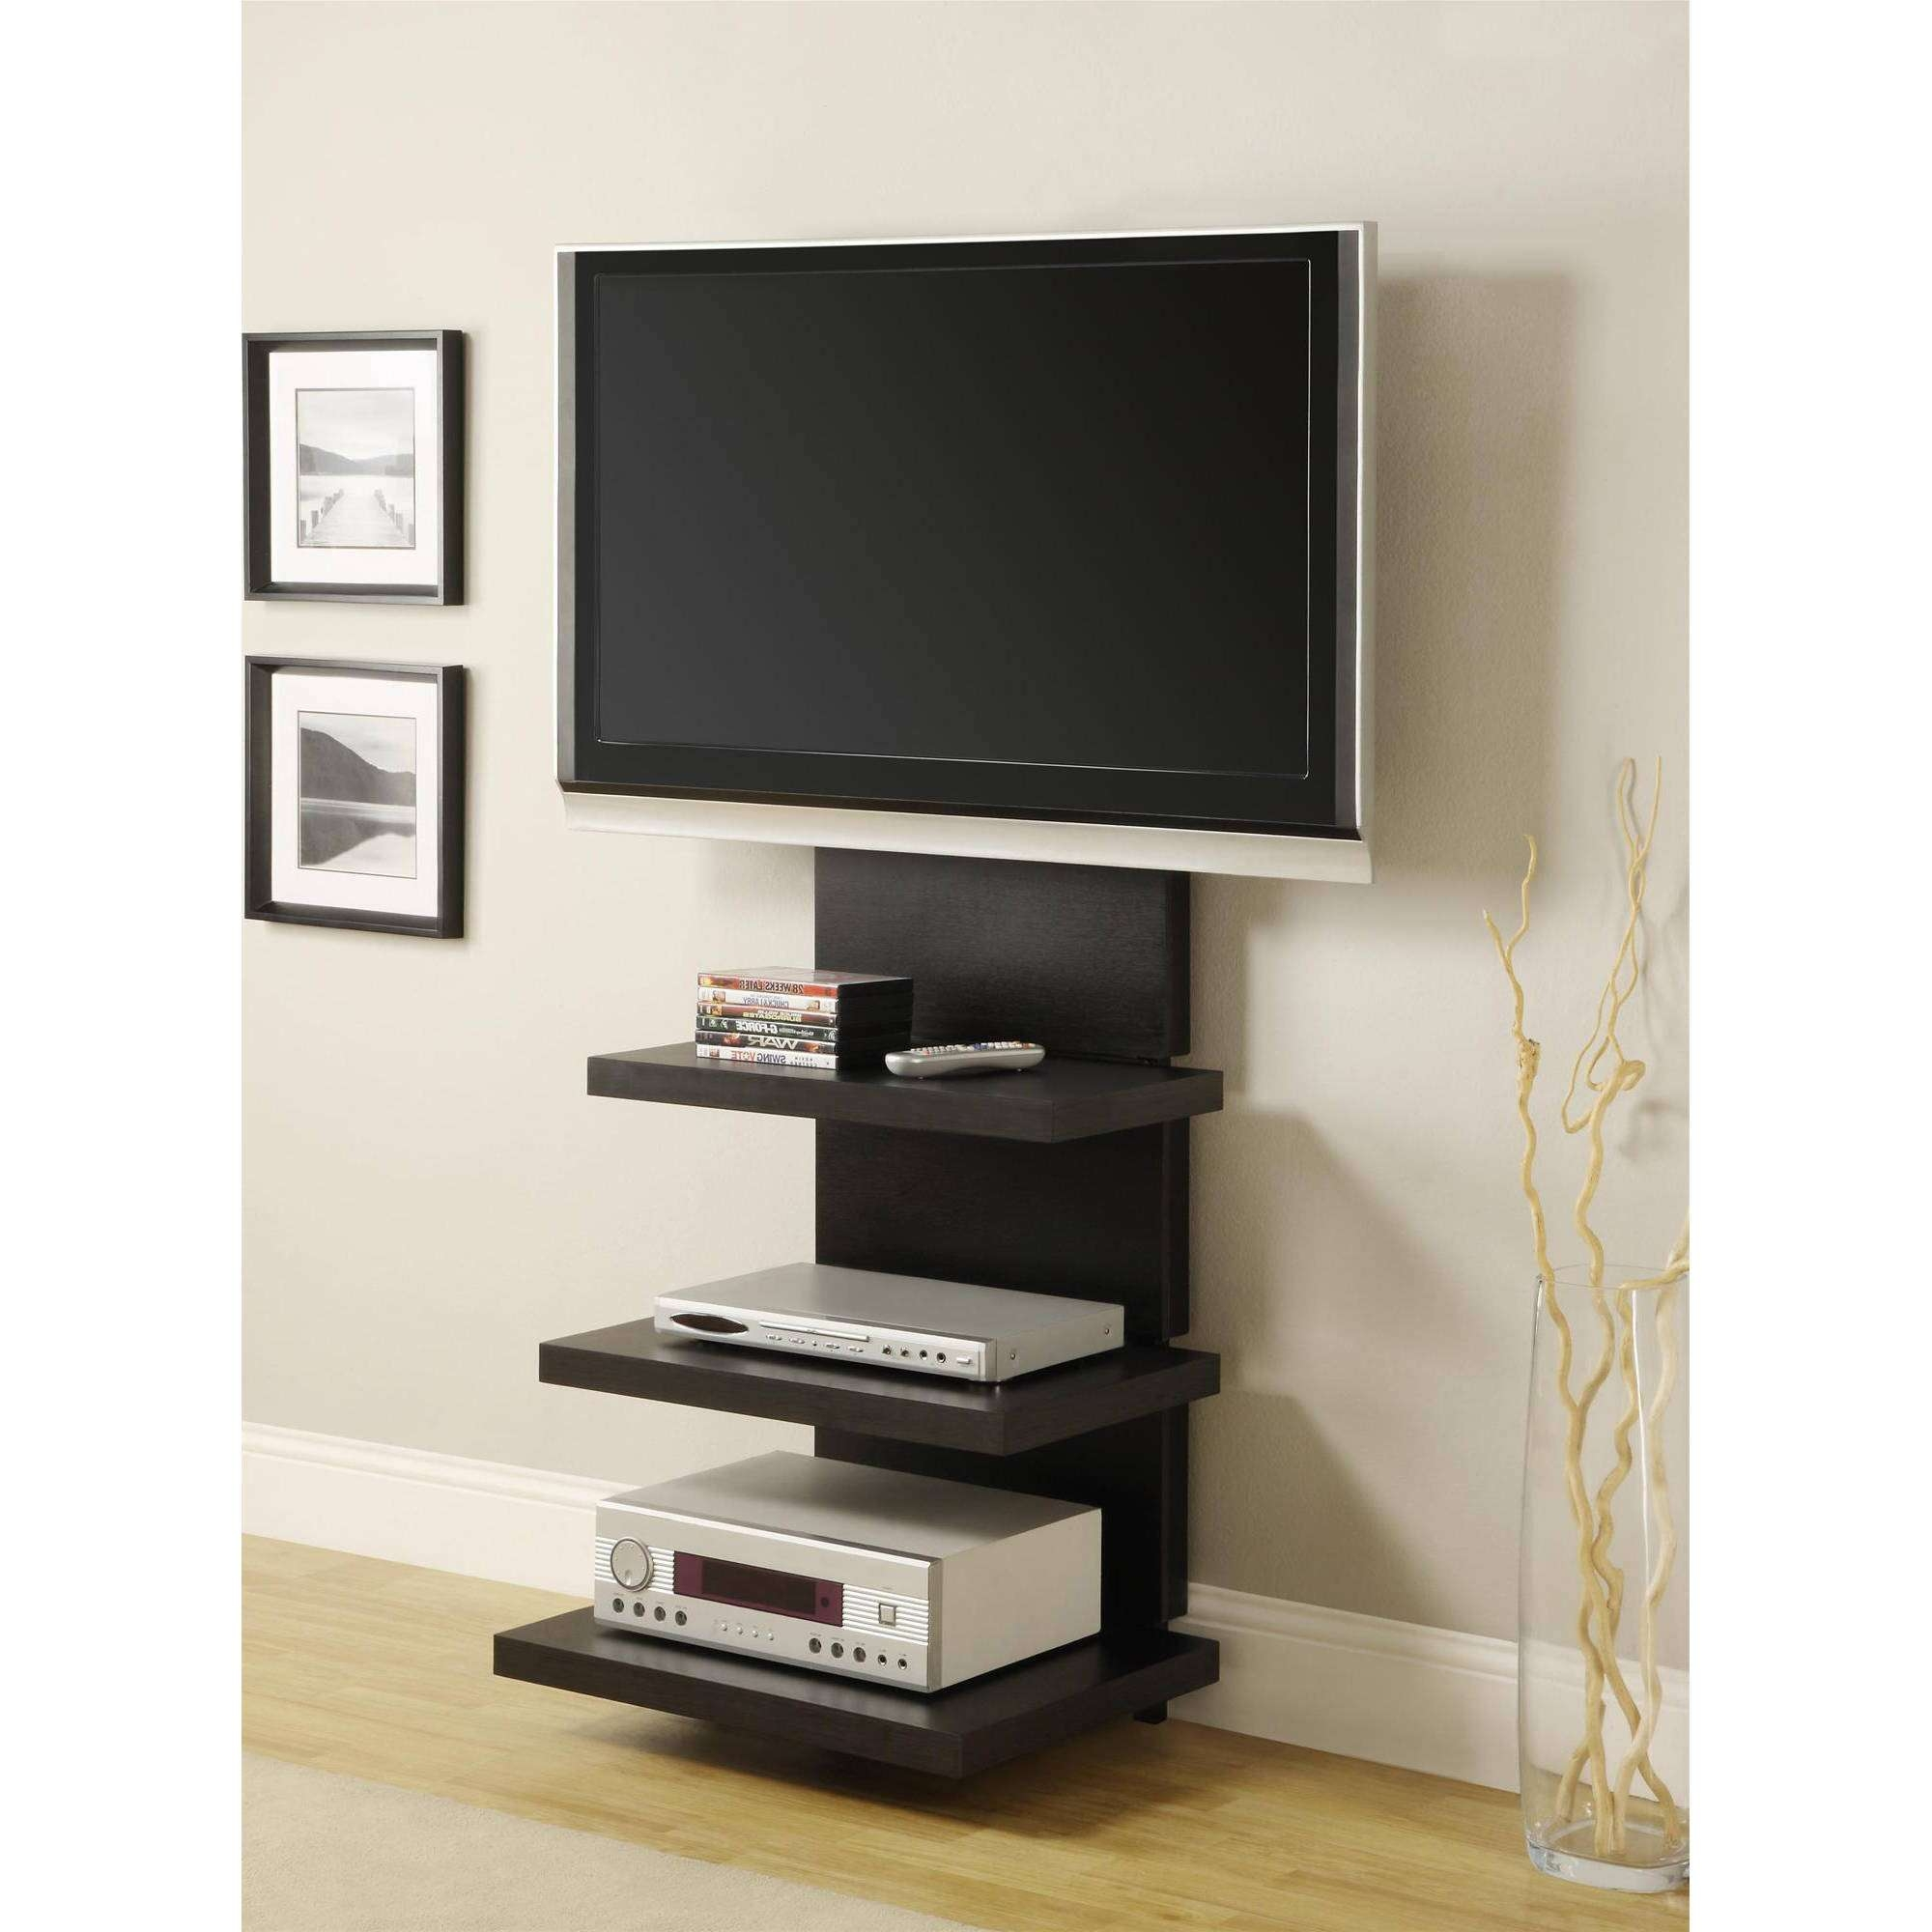 Ameriwood Home Elevation Altramount Tv Stand For Tvs Up To 60 For Tv Cabinets With Storage (View 1 of 20)